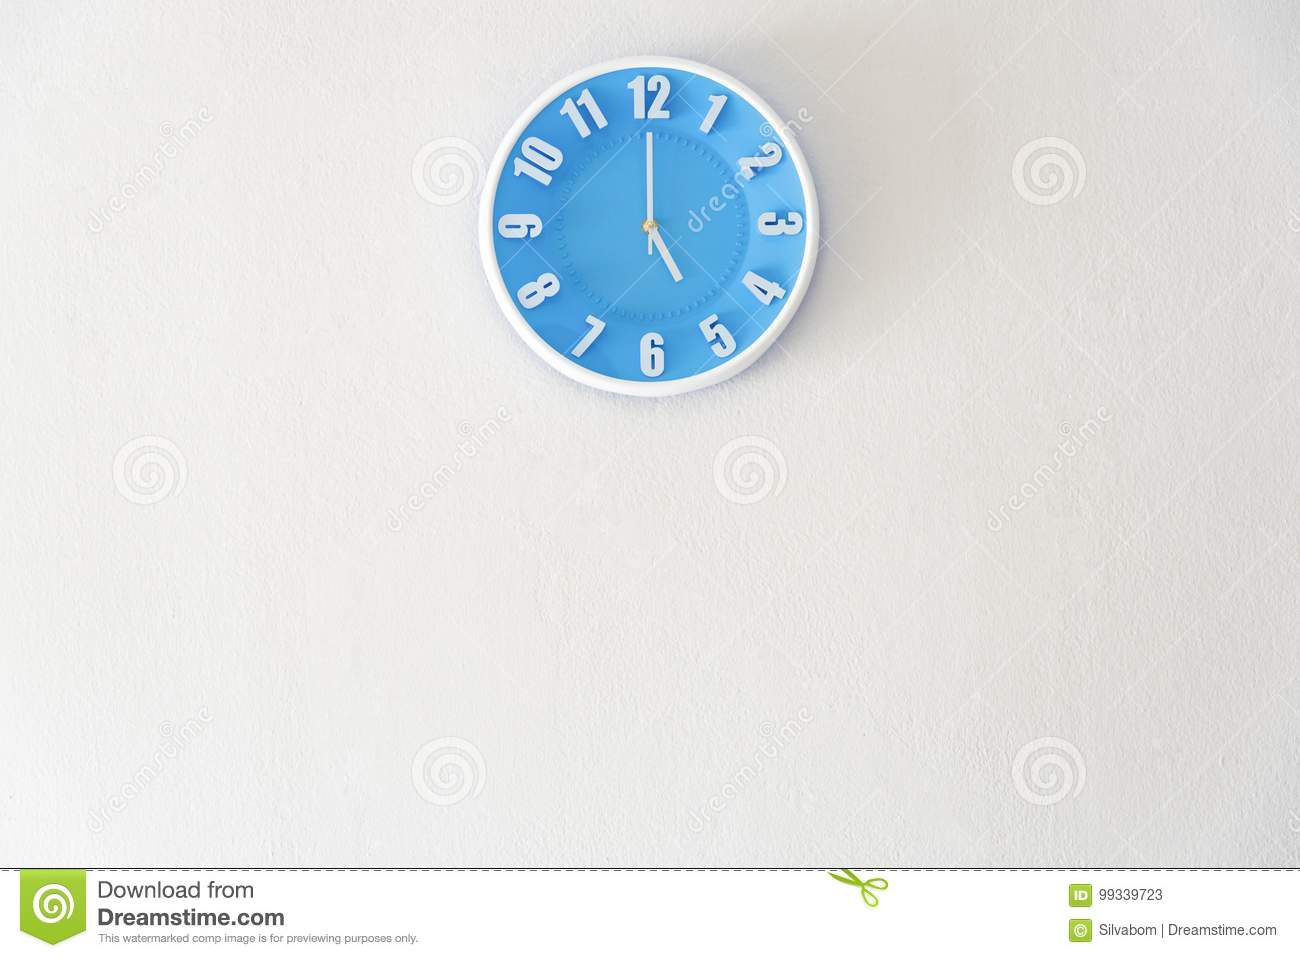 Good afternoon or after midnight with 5:00 clock on white concrete wall interior background with copy space, message board